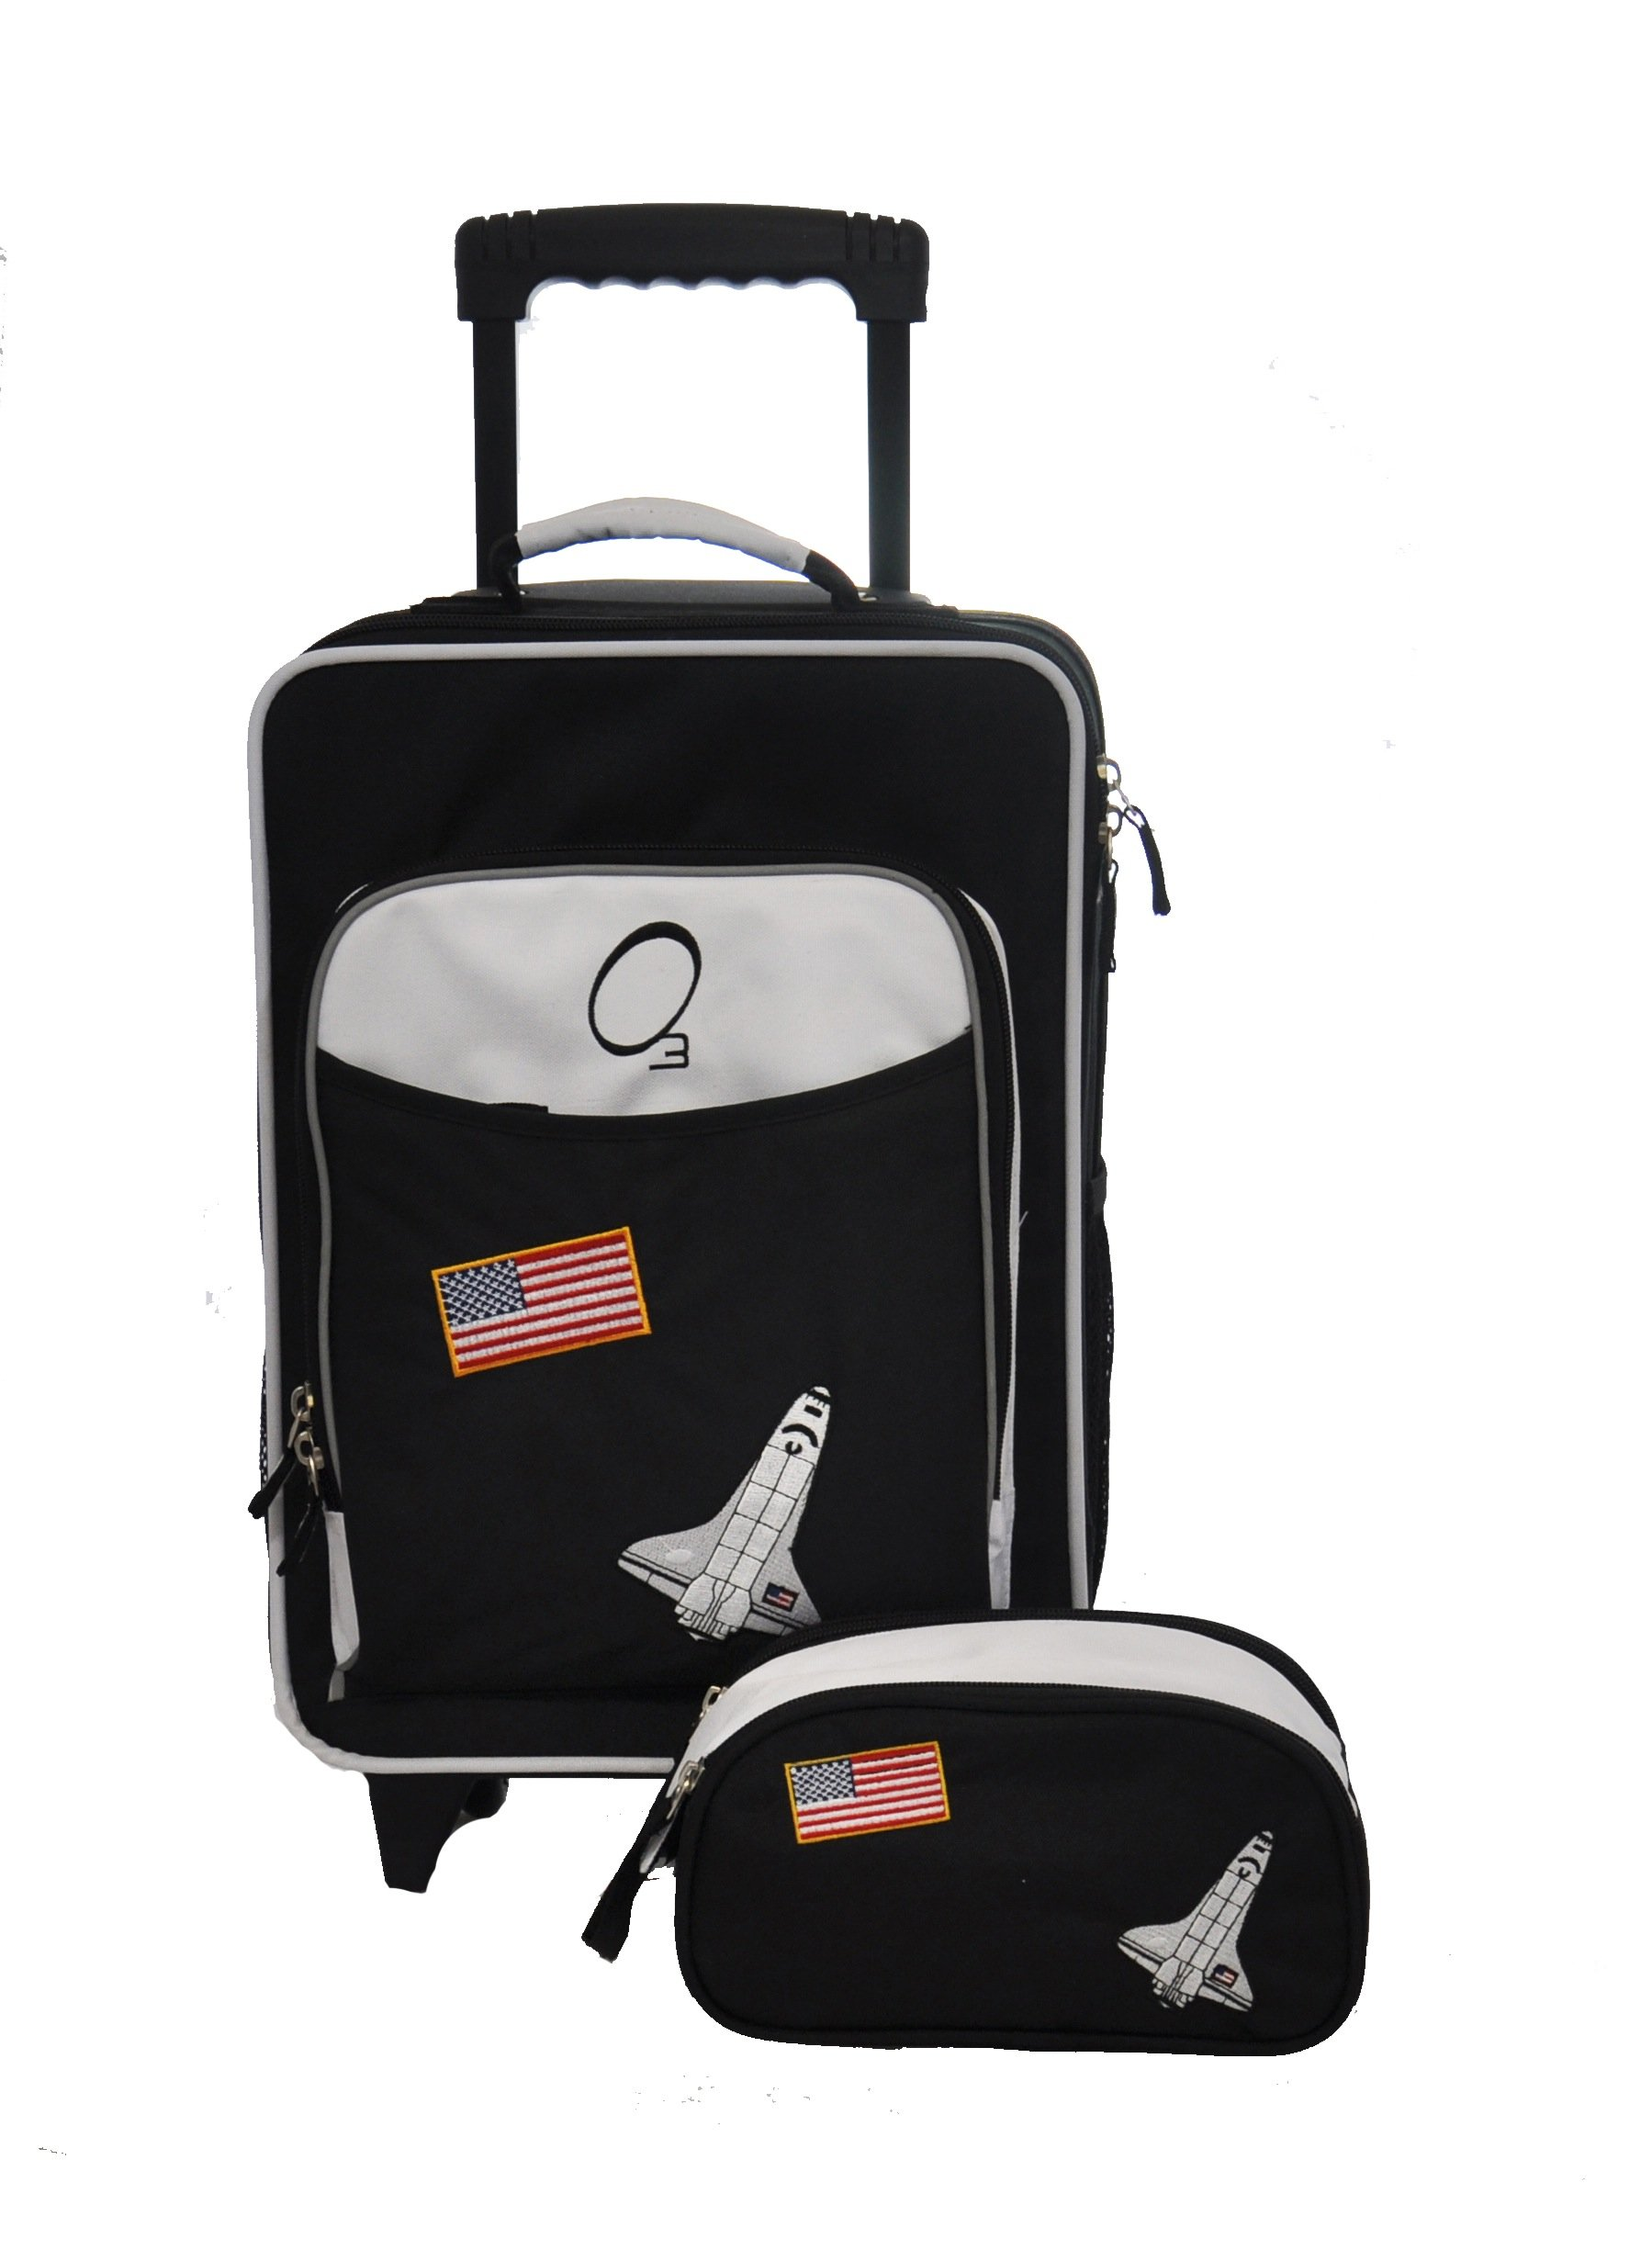 Kids Luggage Set, Large Rolling Piece and Travel Toiletry Case (Space) - Obersee by Obersee (Image #2)